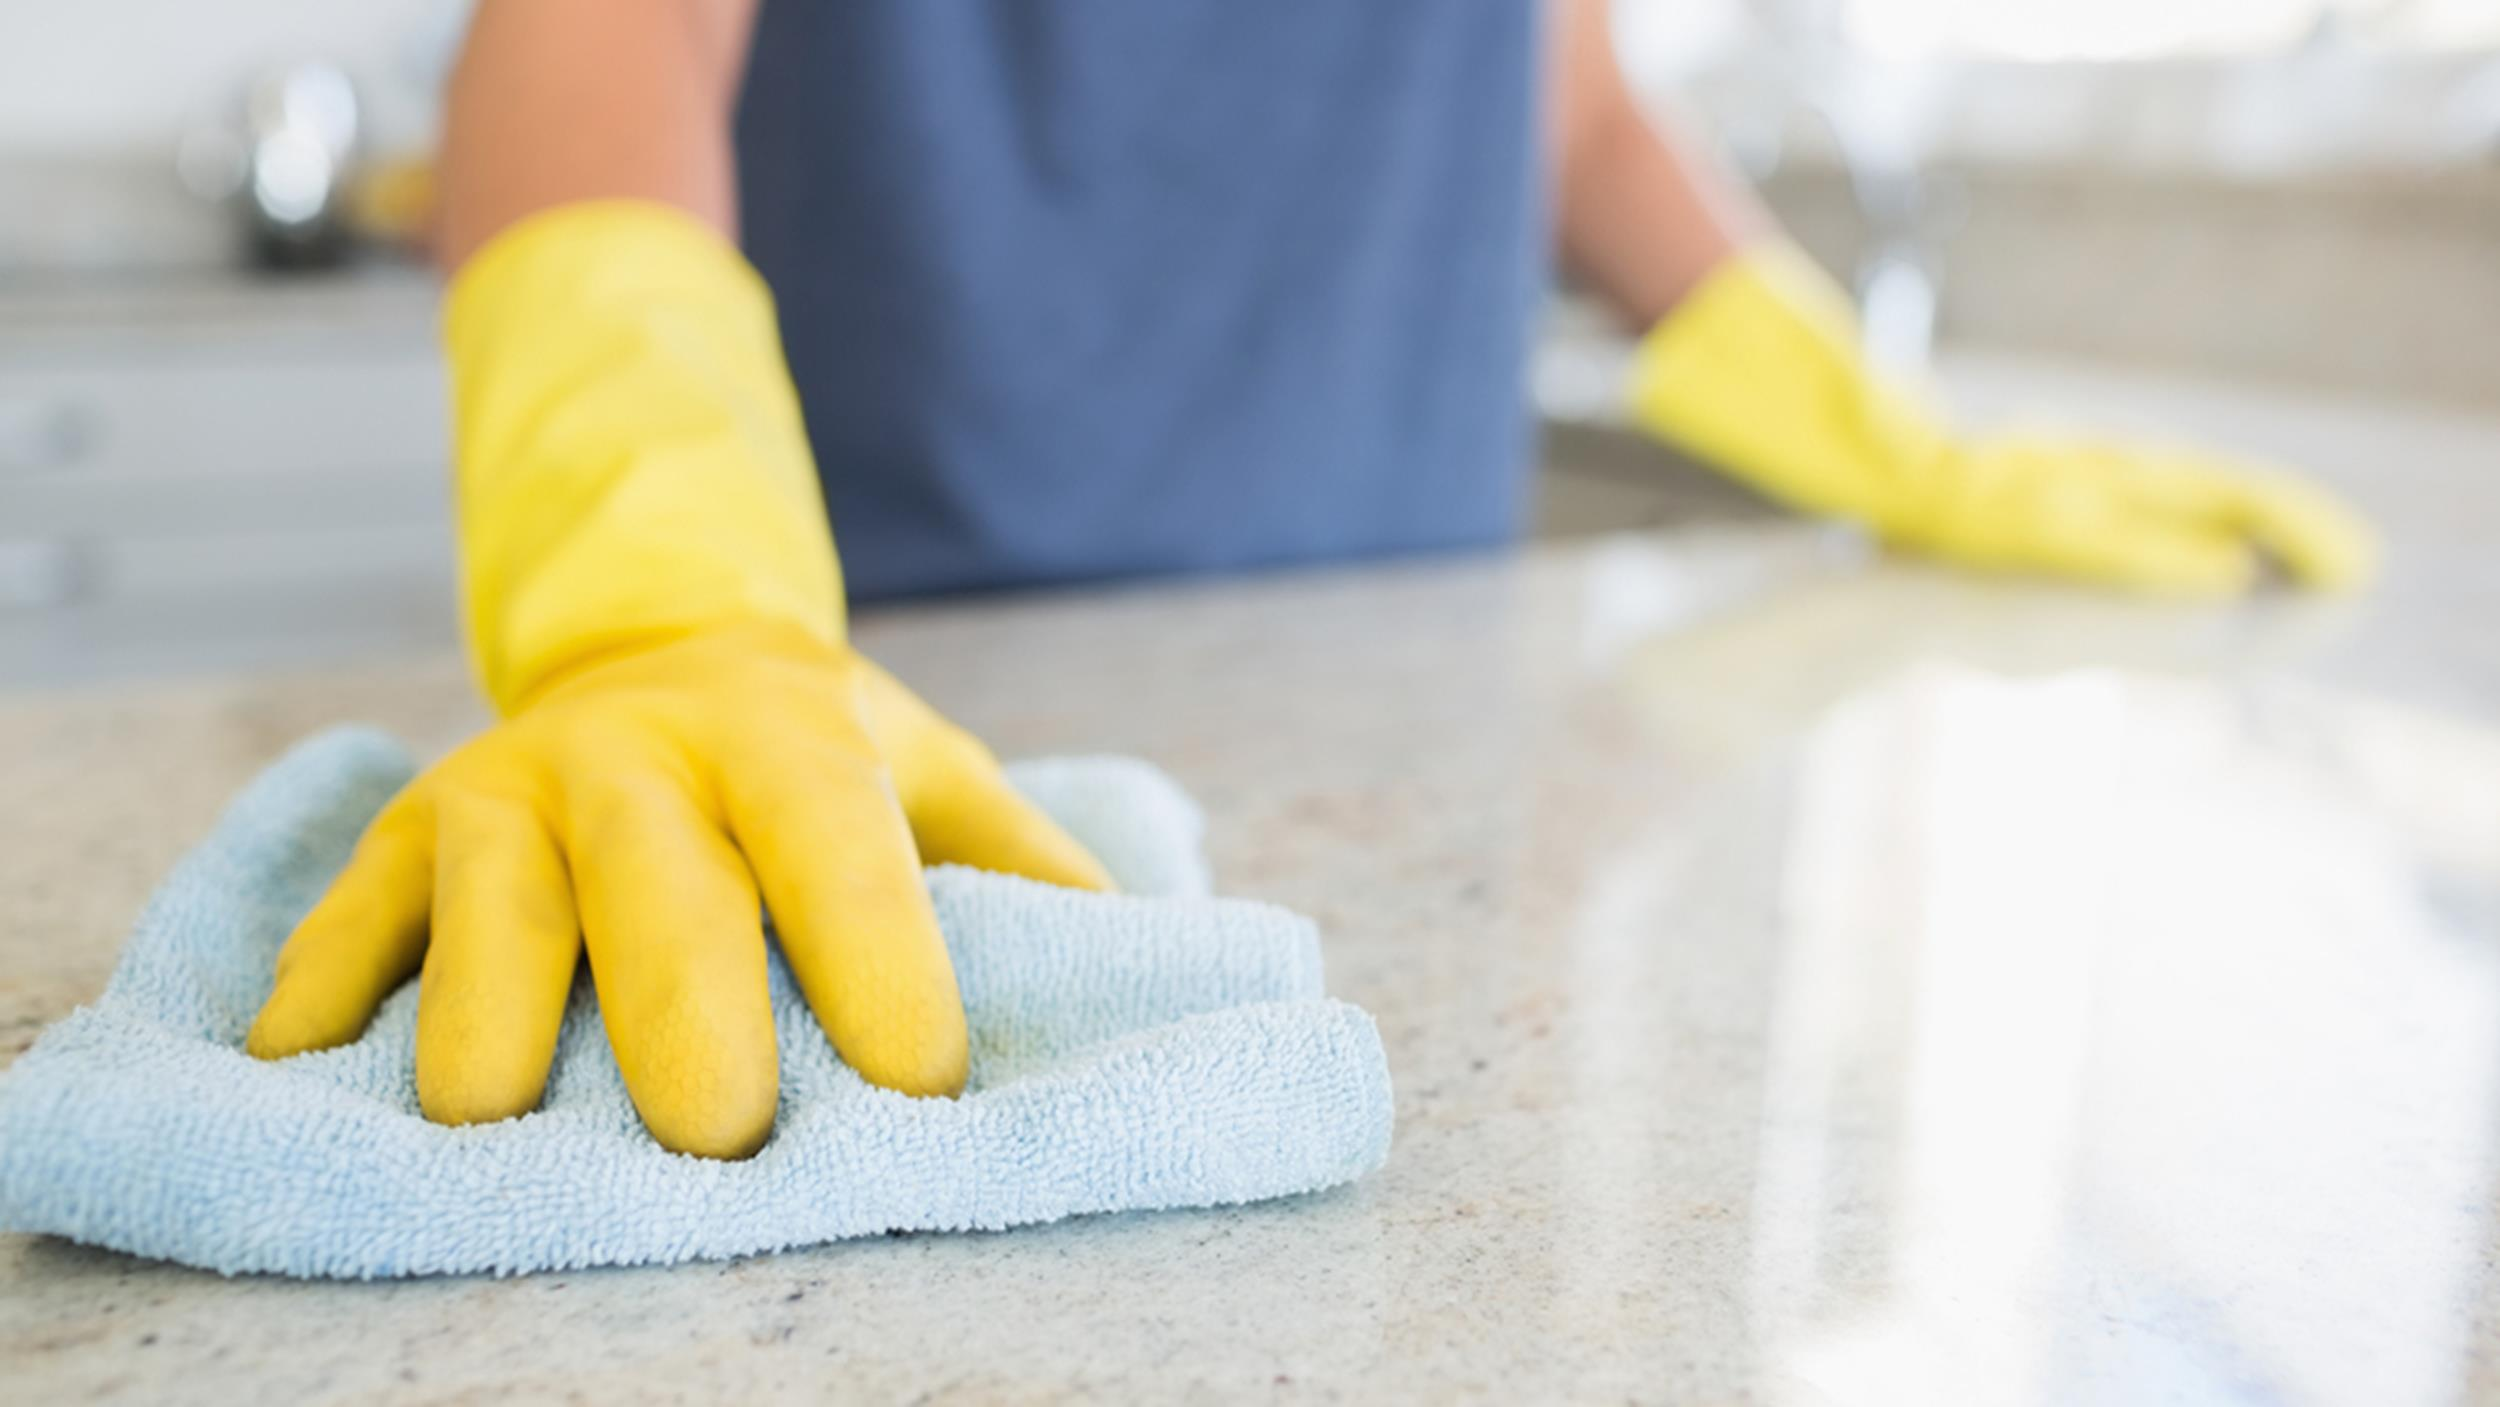 When do common household products go bad?